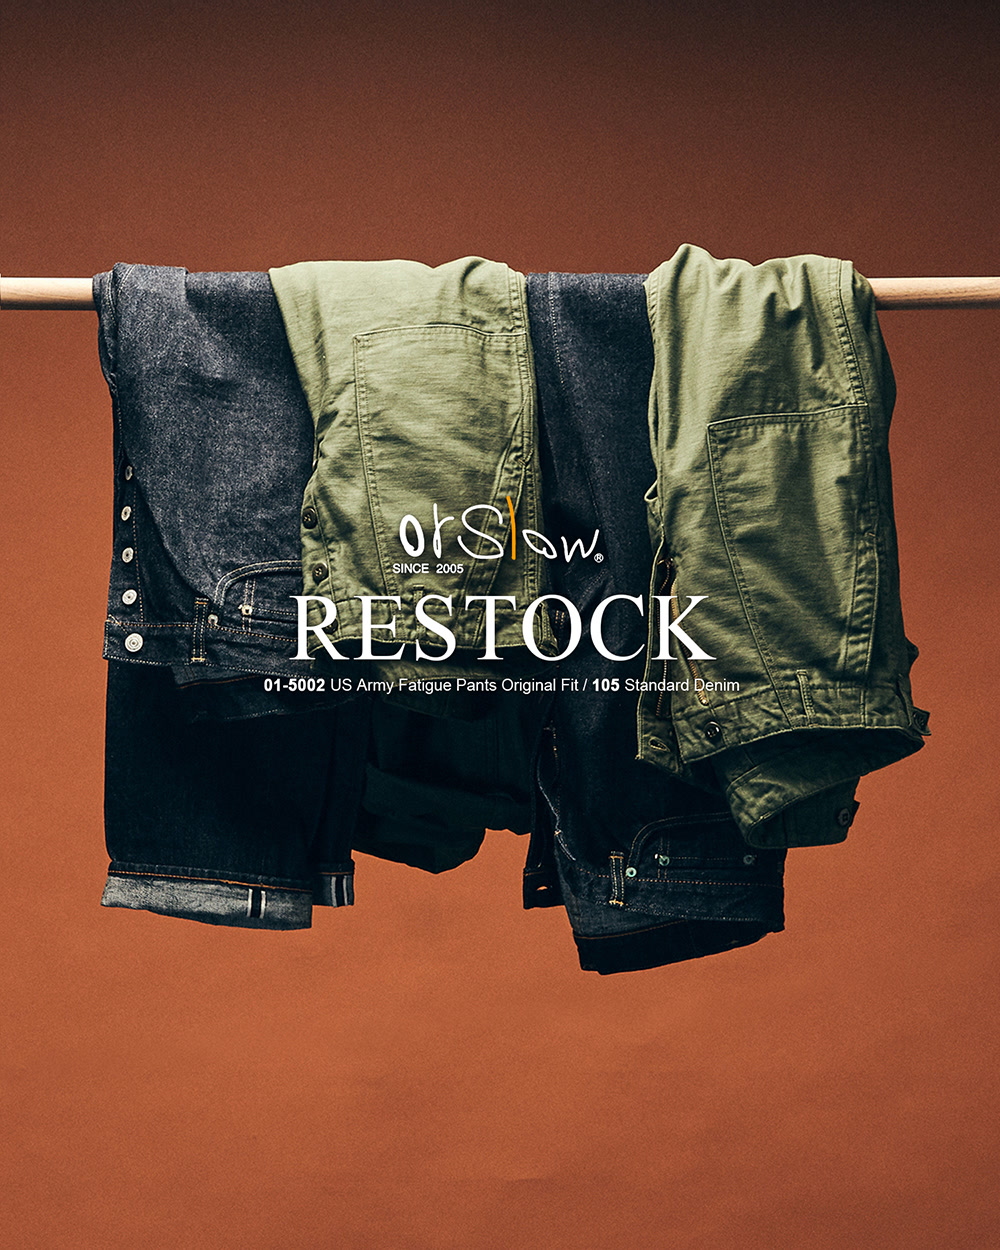 [ORSLOW] FATIGUE PANTS / 105 DENIM PANTS RESTOCK